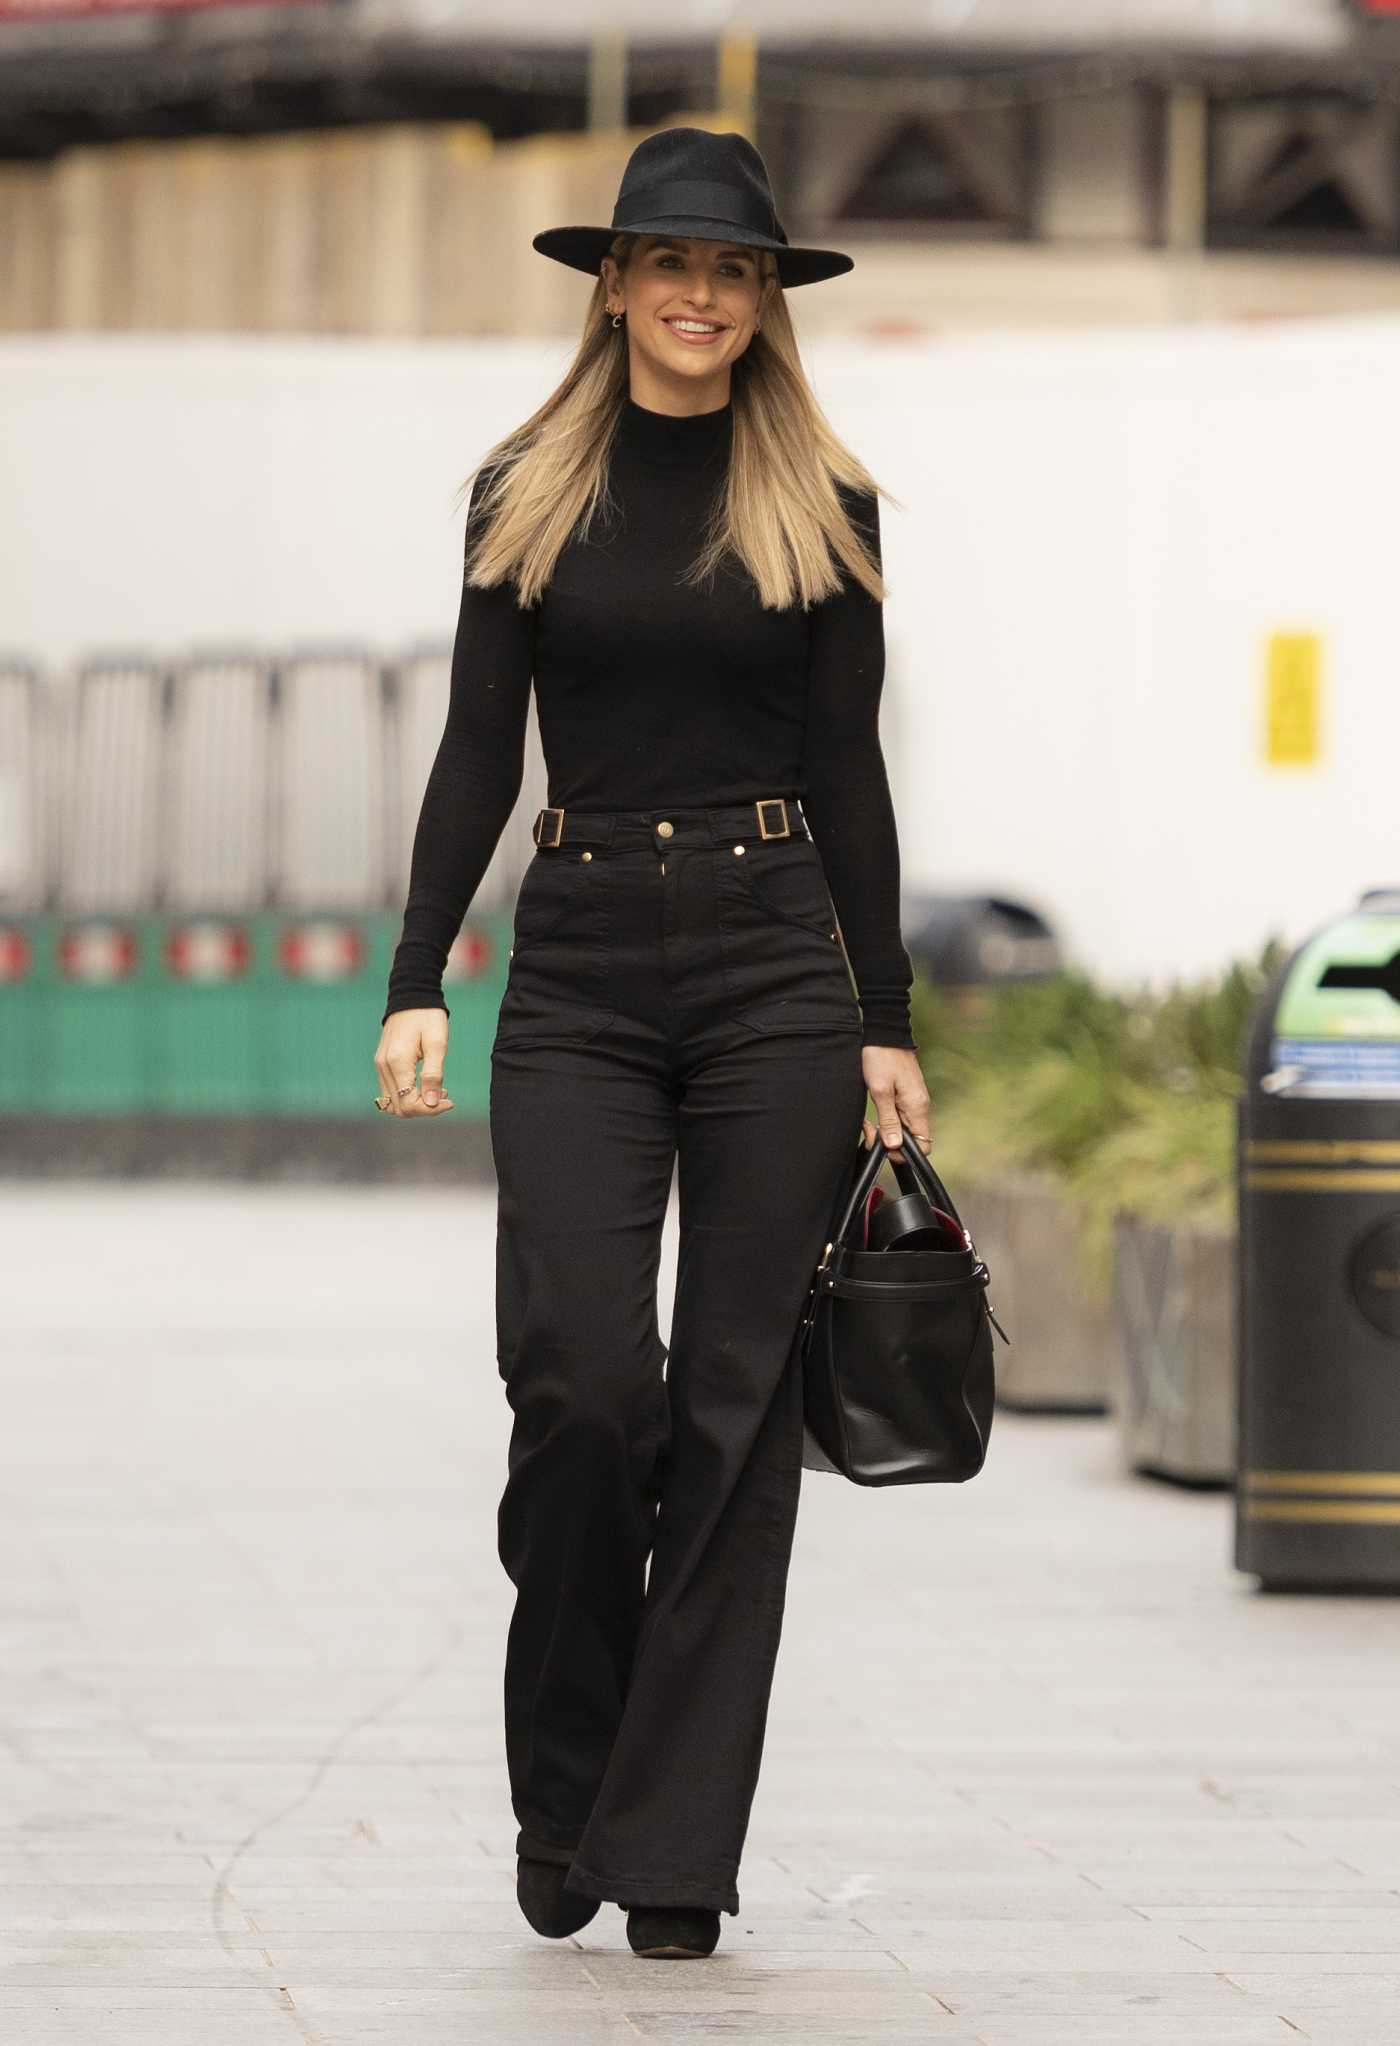 Vogue Williams in a Black Outfit Arrtives at the Heart Radio in London 02/21/2021